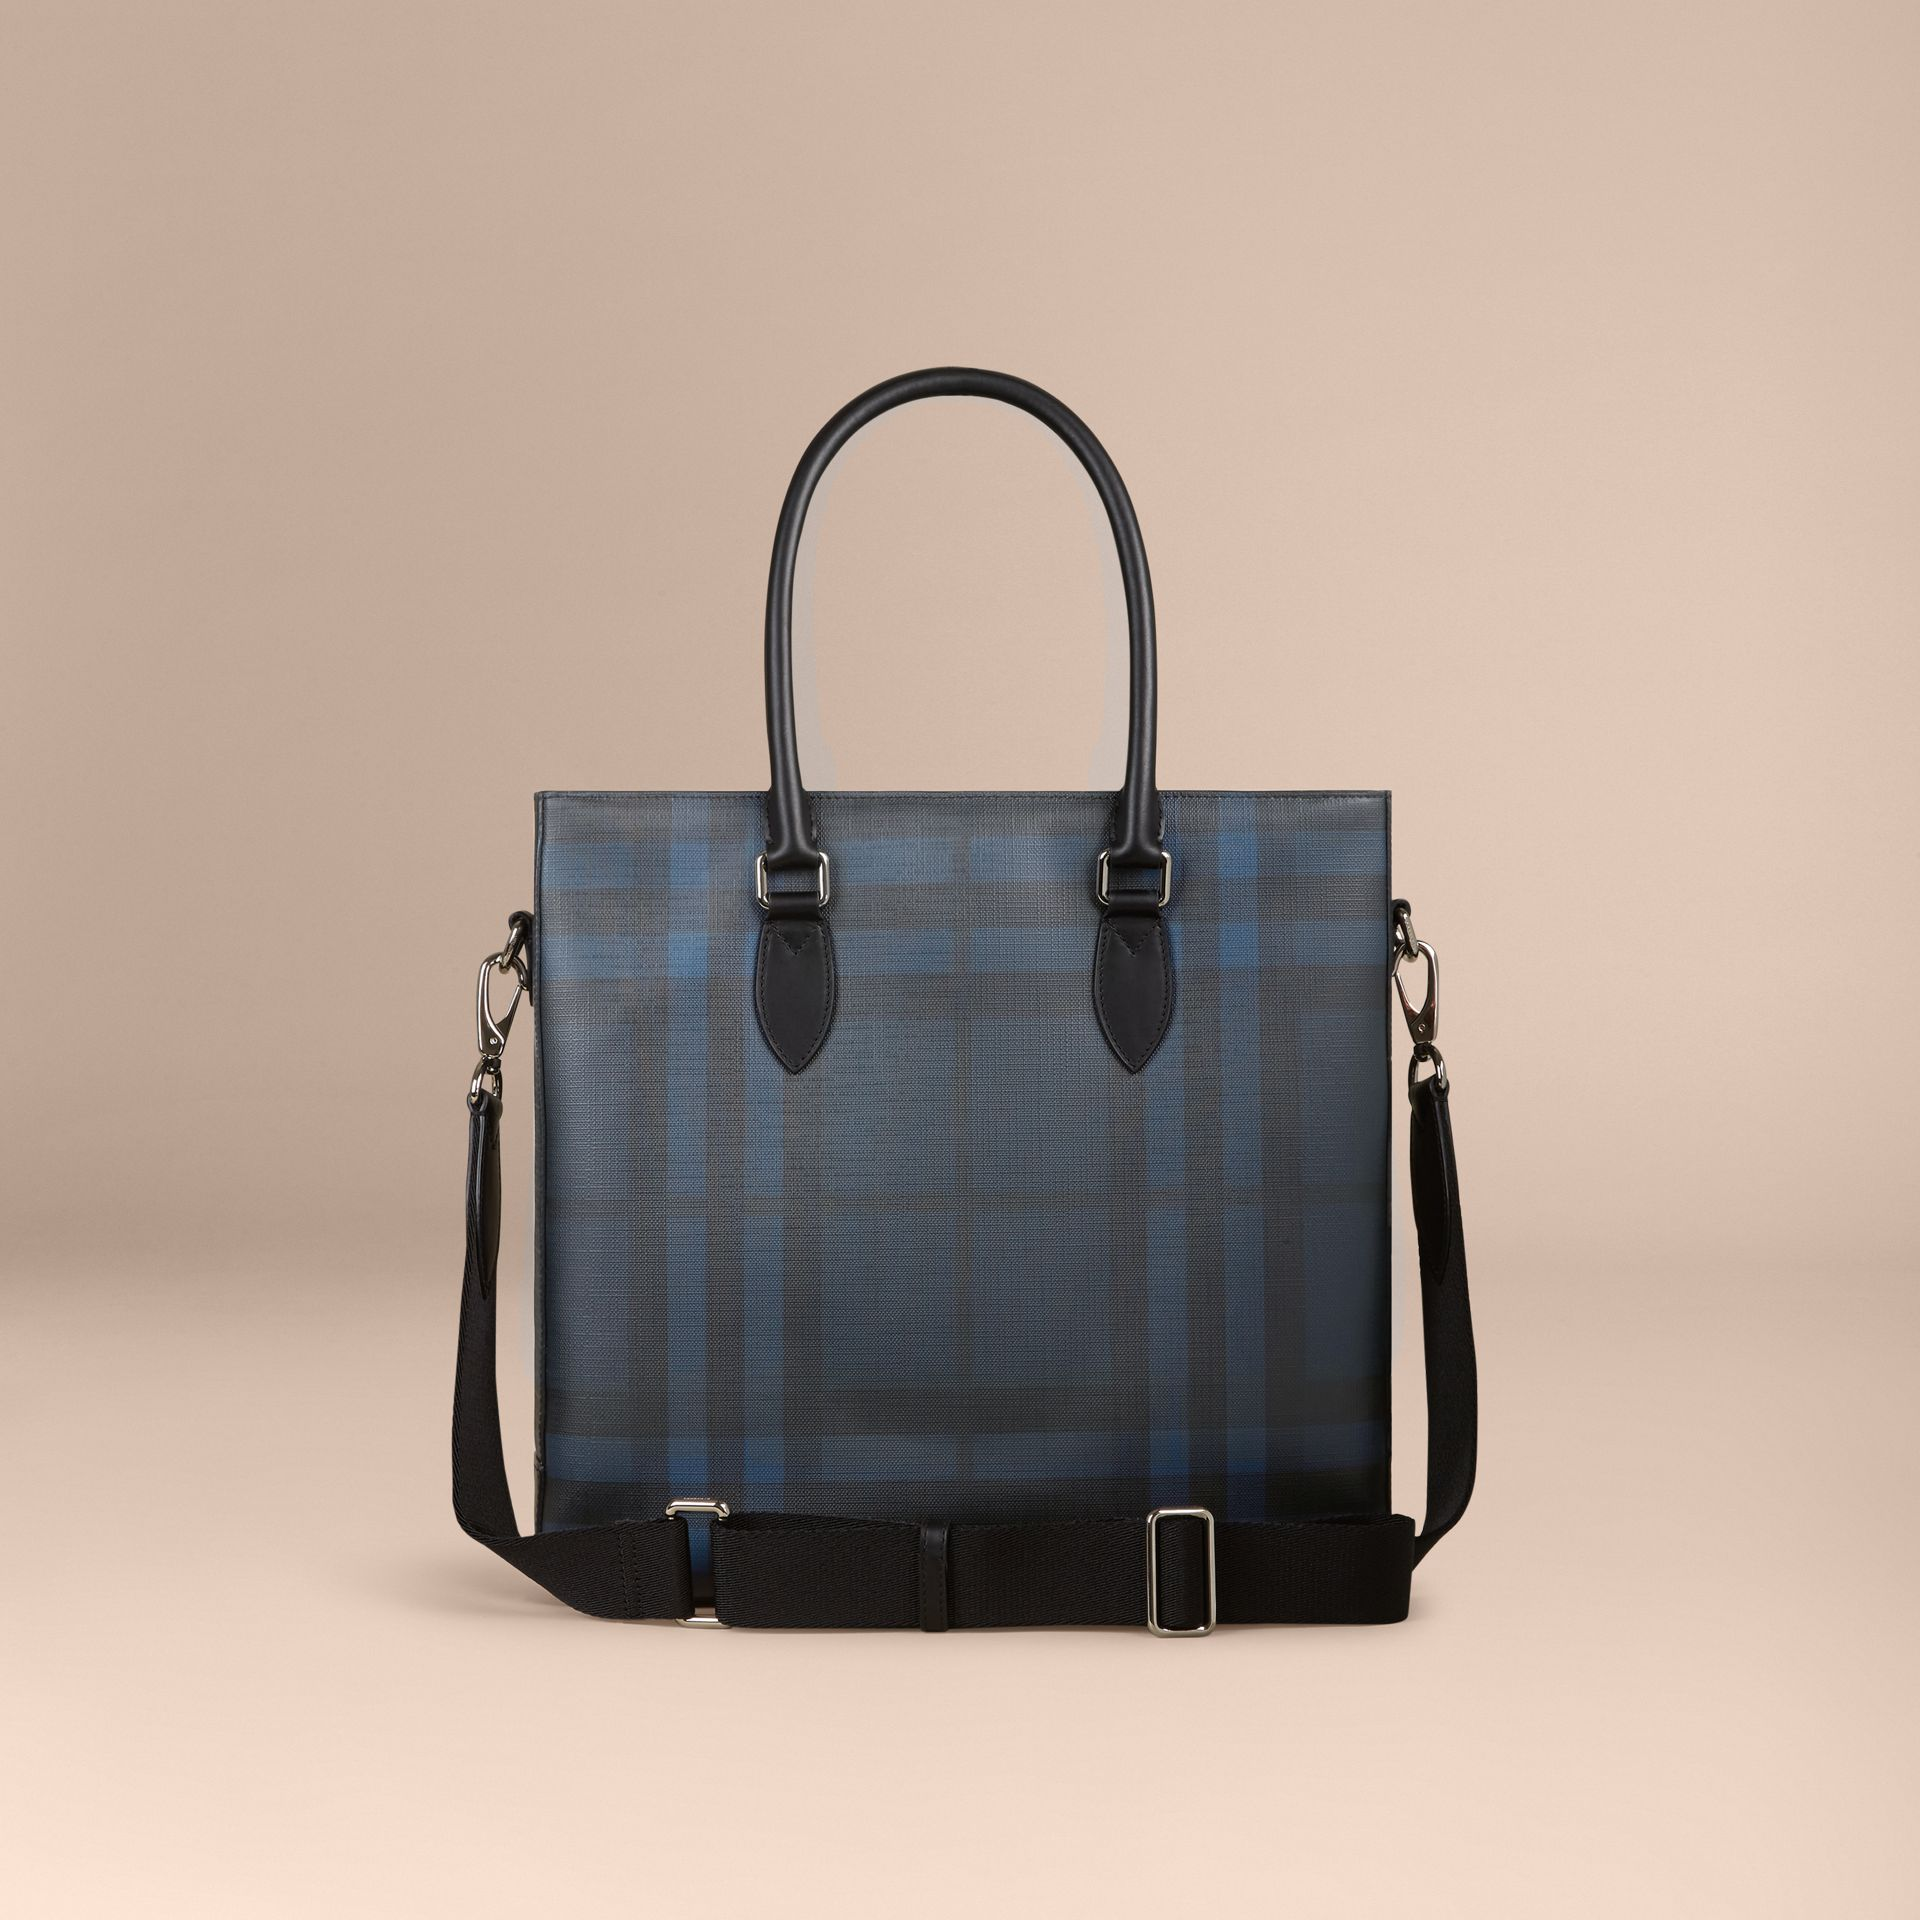 London Check Tote Bag in Navy/black - Men | Burberry - gallery image 4